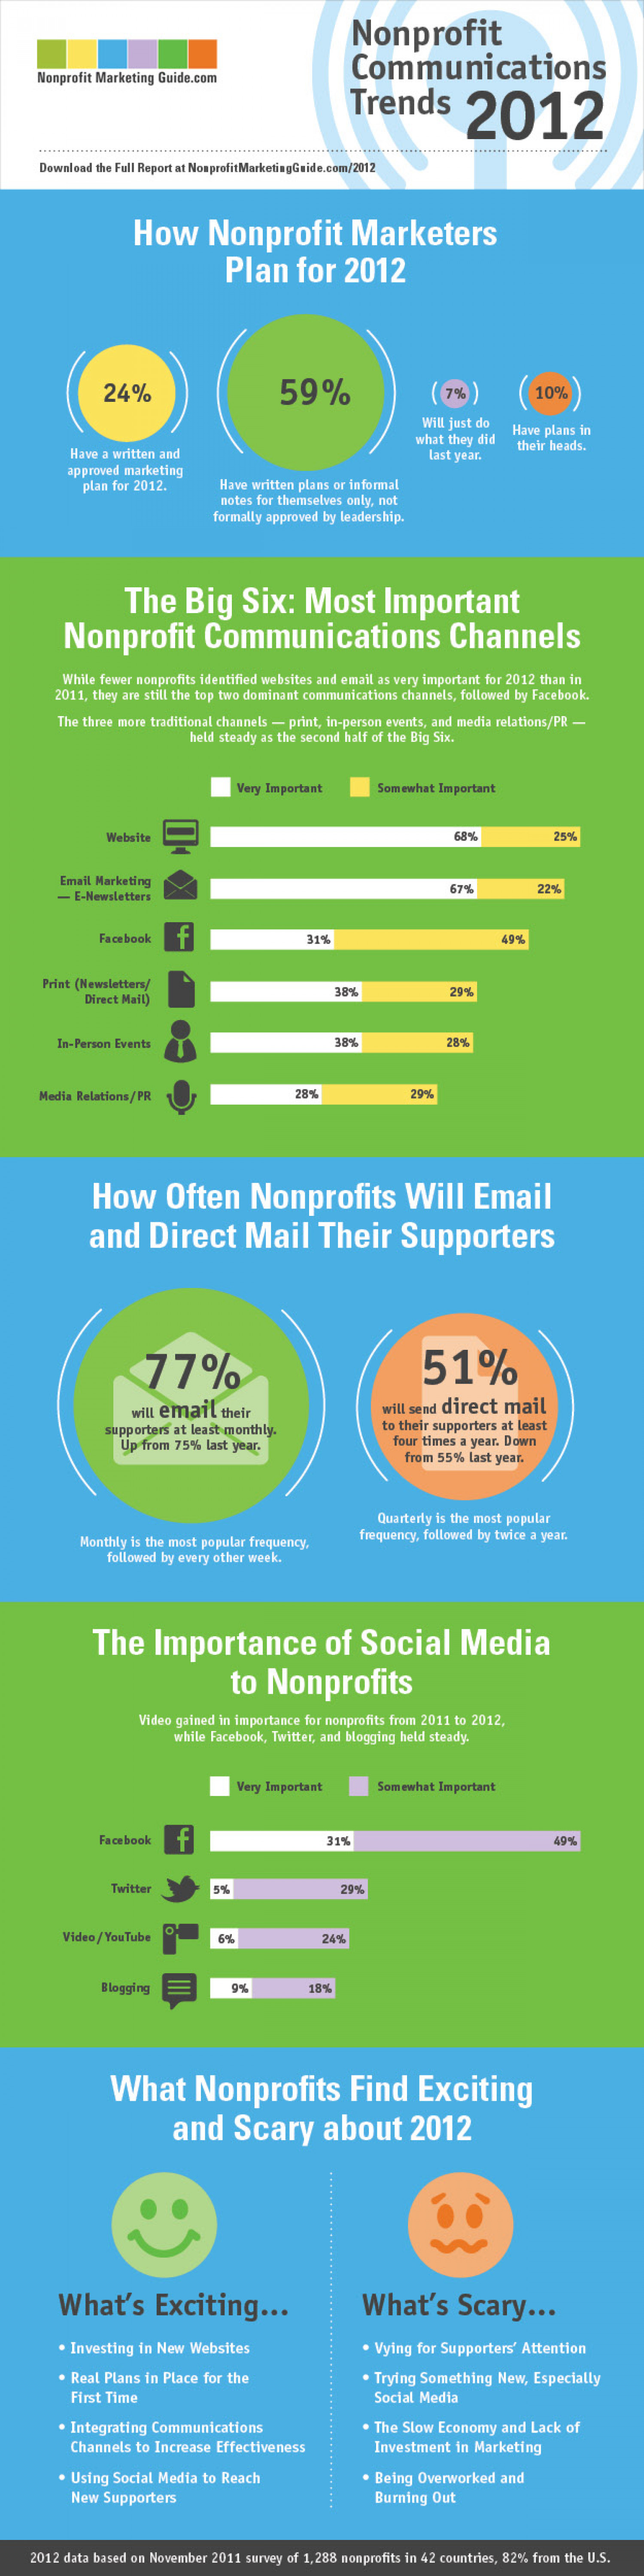 2012 Nonprofit Communications Trends Infographic